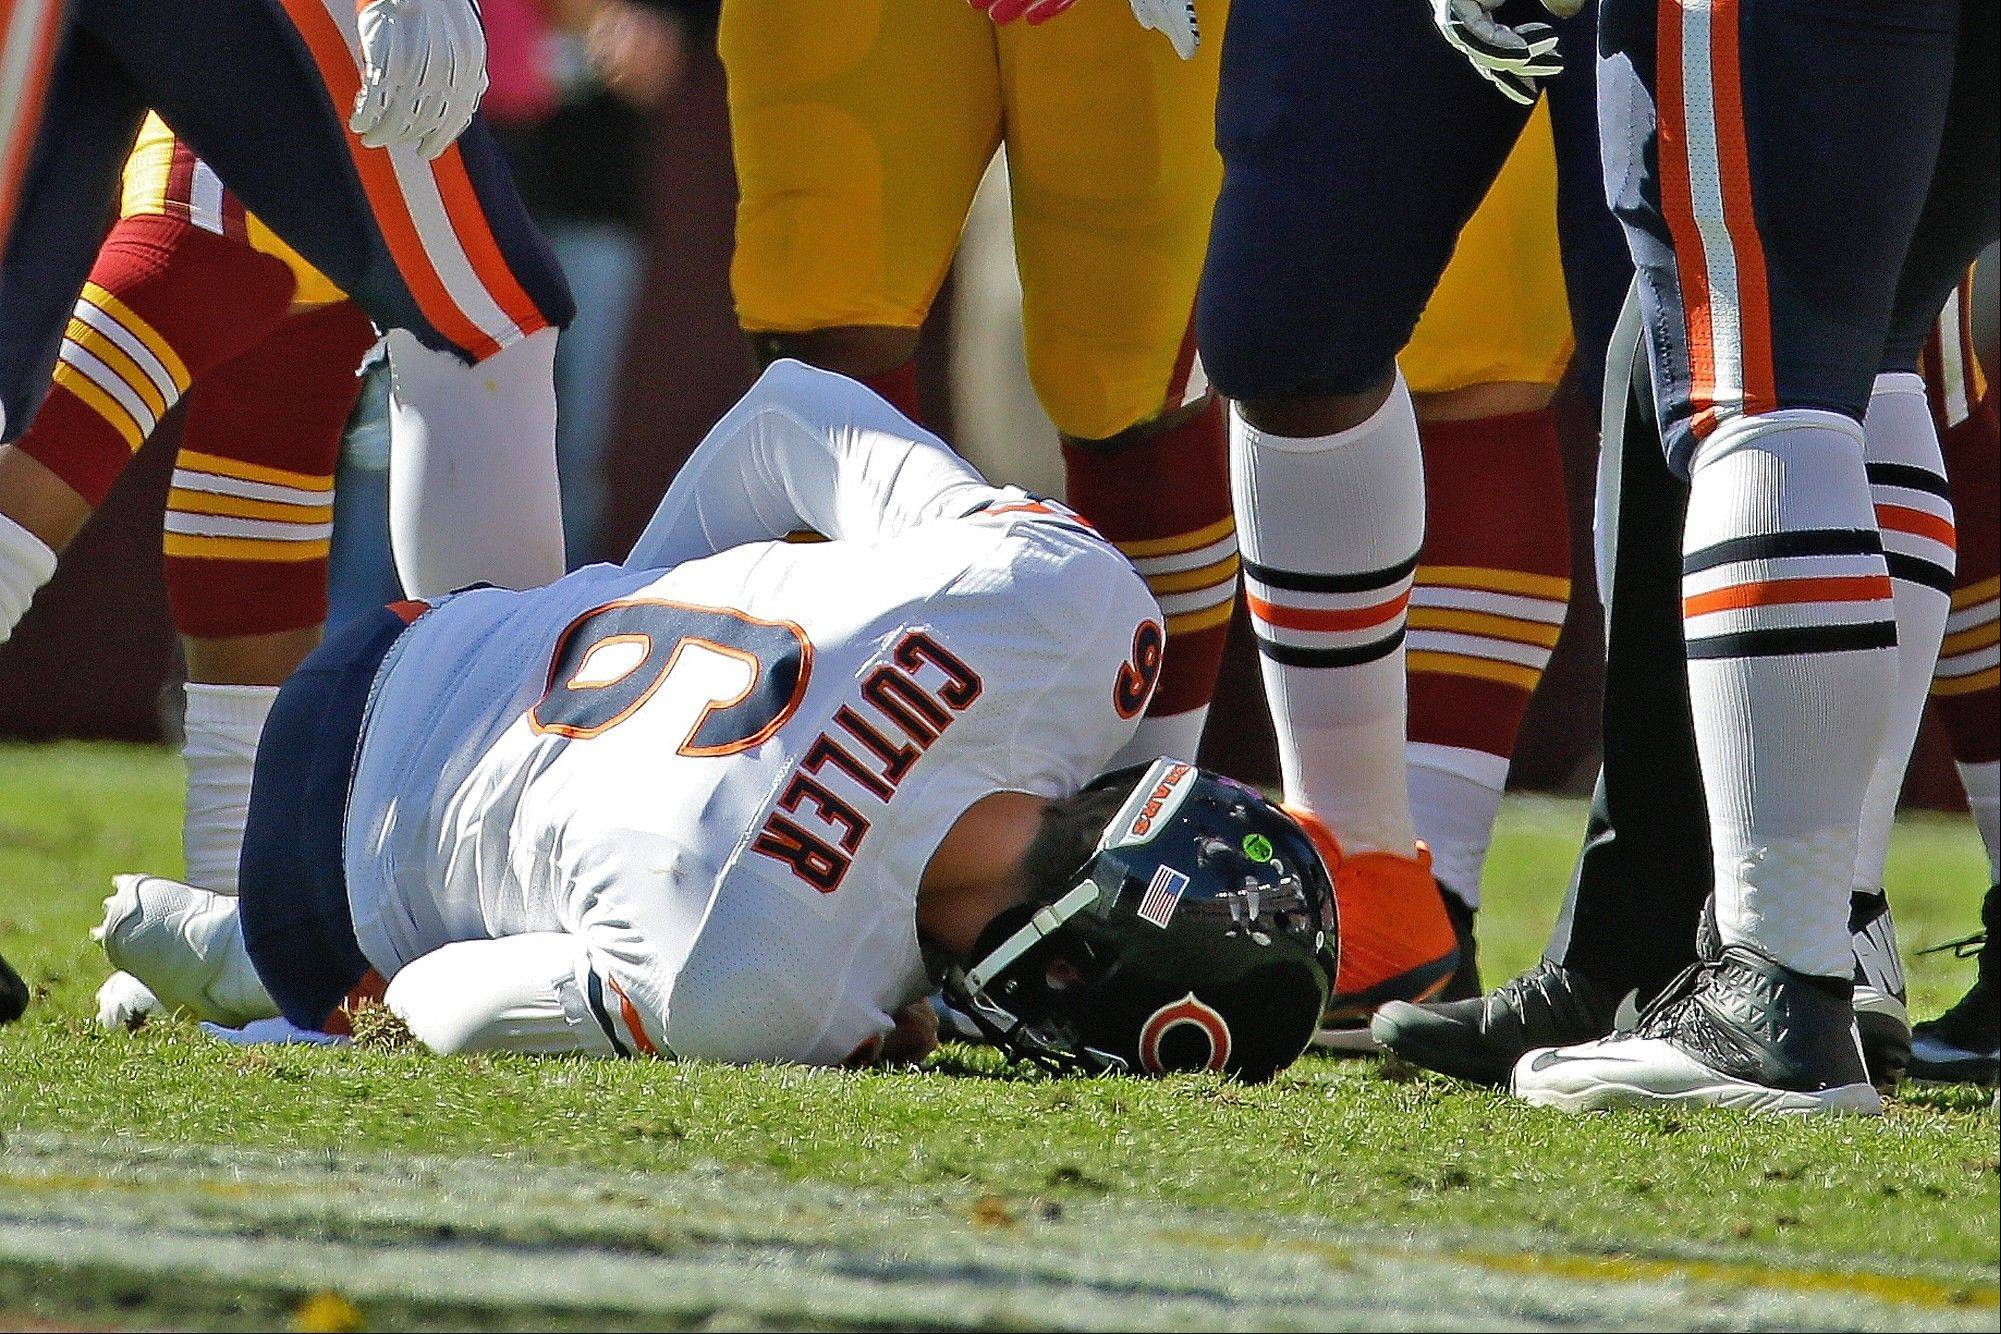 Bears quarterback Jay Cutler lies on the field after being injured in a sack by Washington defensive end Chris Baker during the first half of a NFL football game in Landover, Md., Sunday, Oct. 20, 2013.